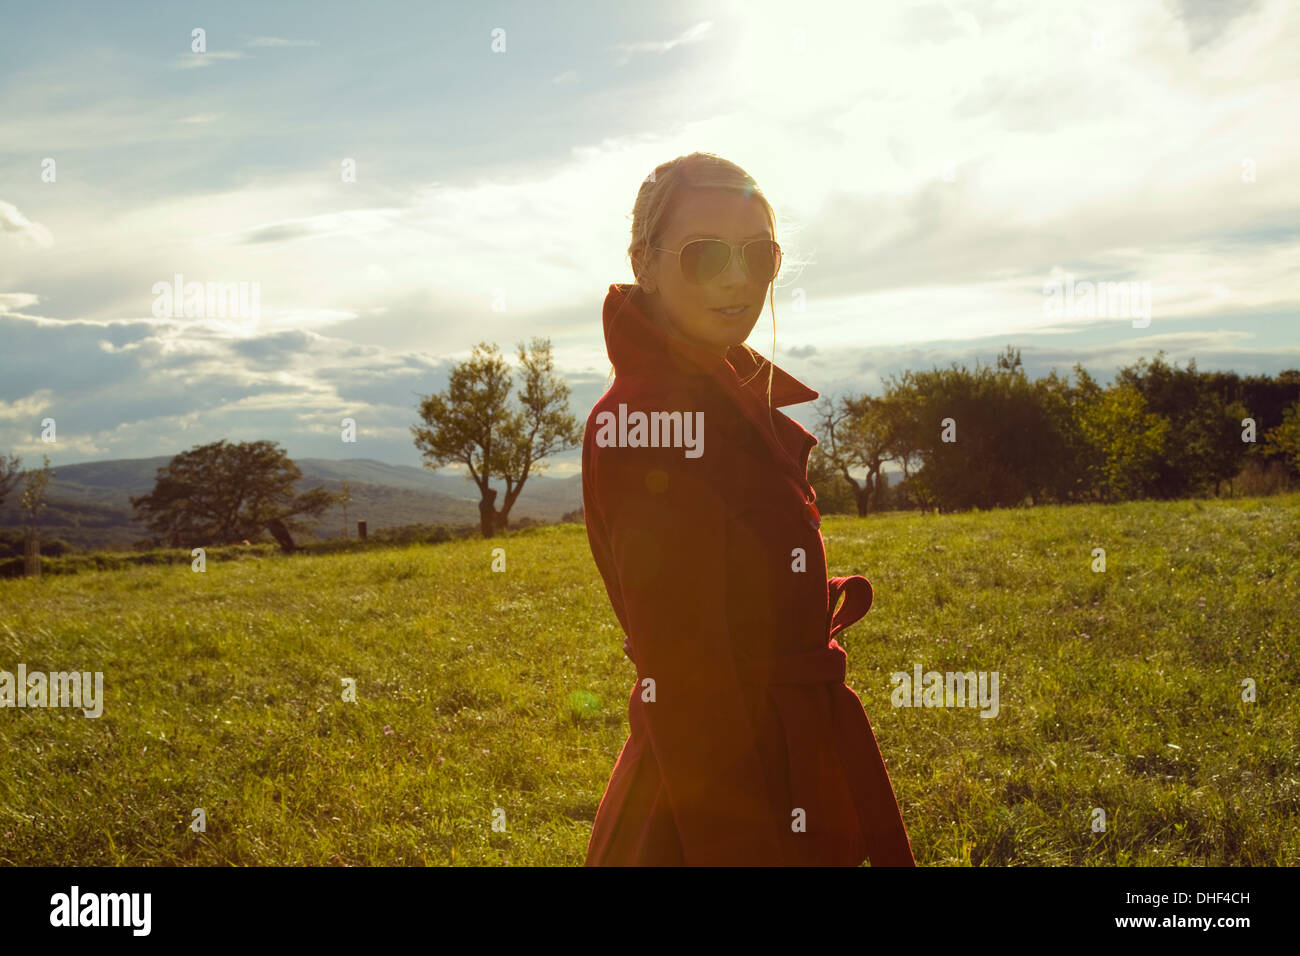 Young woman in field posing in sunglasses - Stock Image